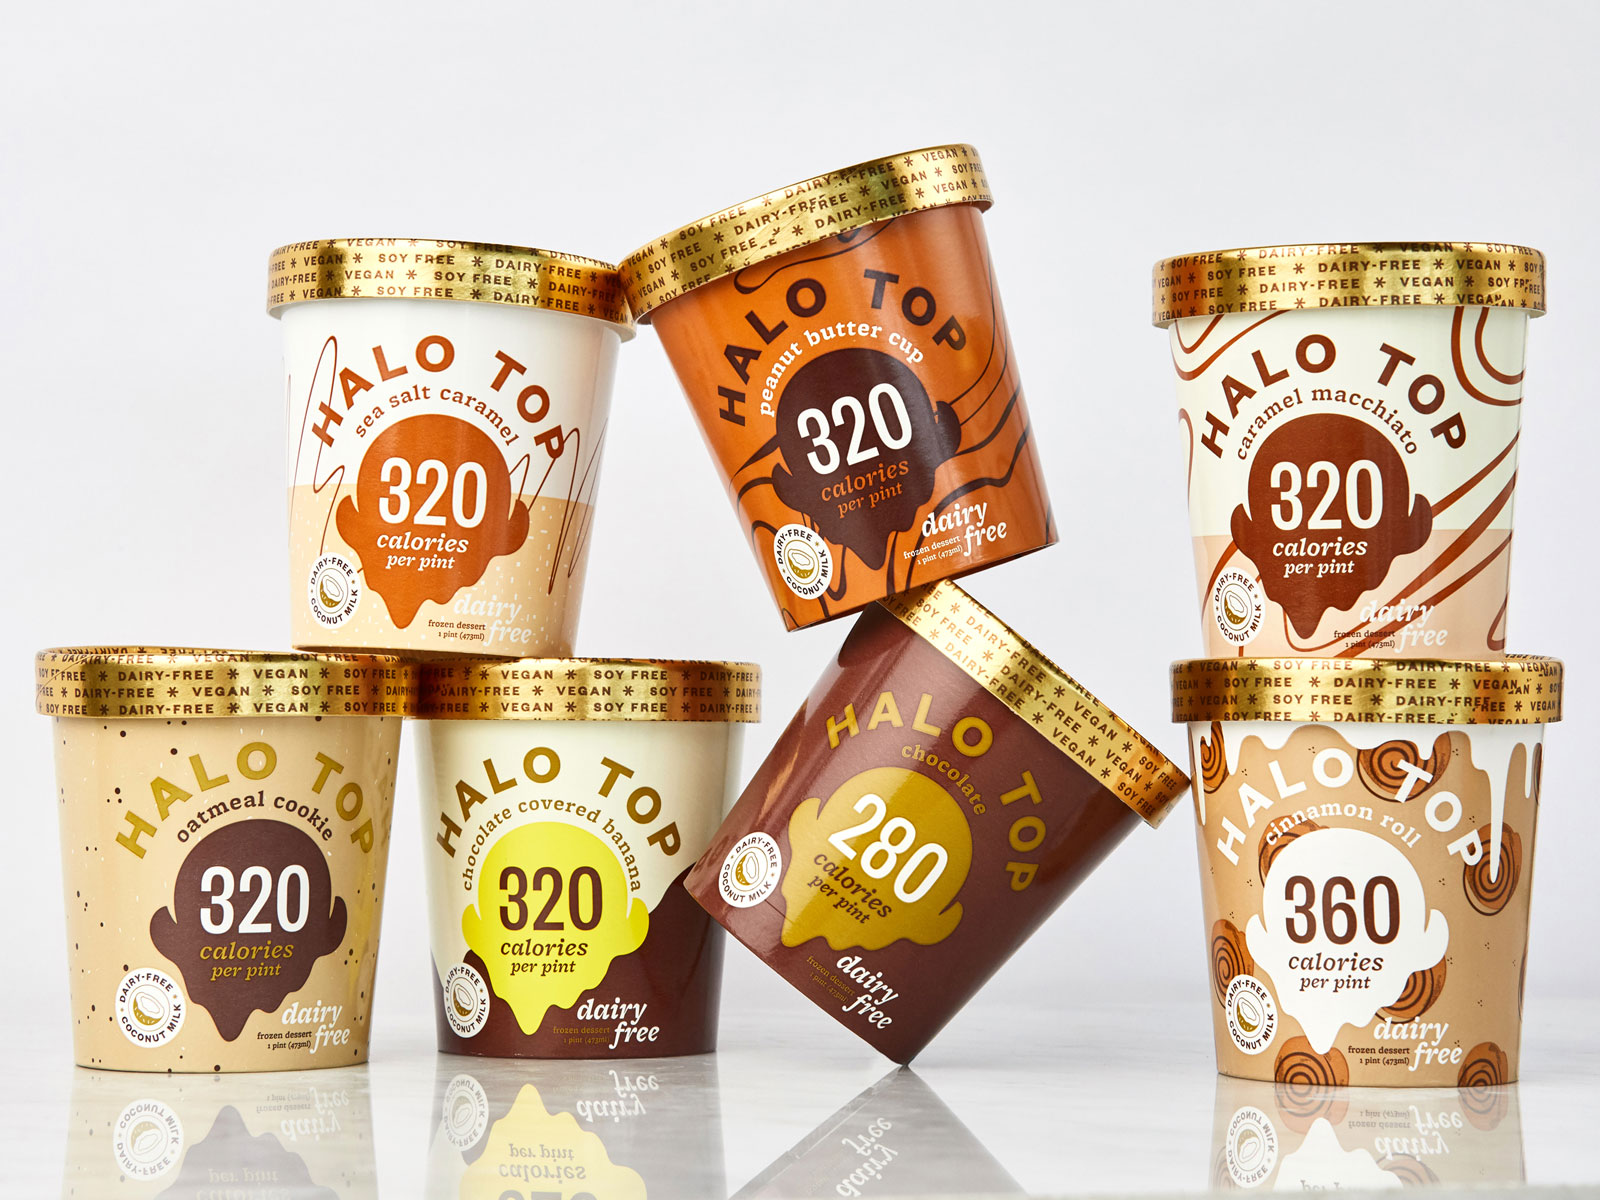 Vegan Halo Top Ice Cream